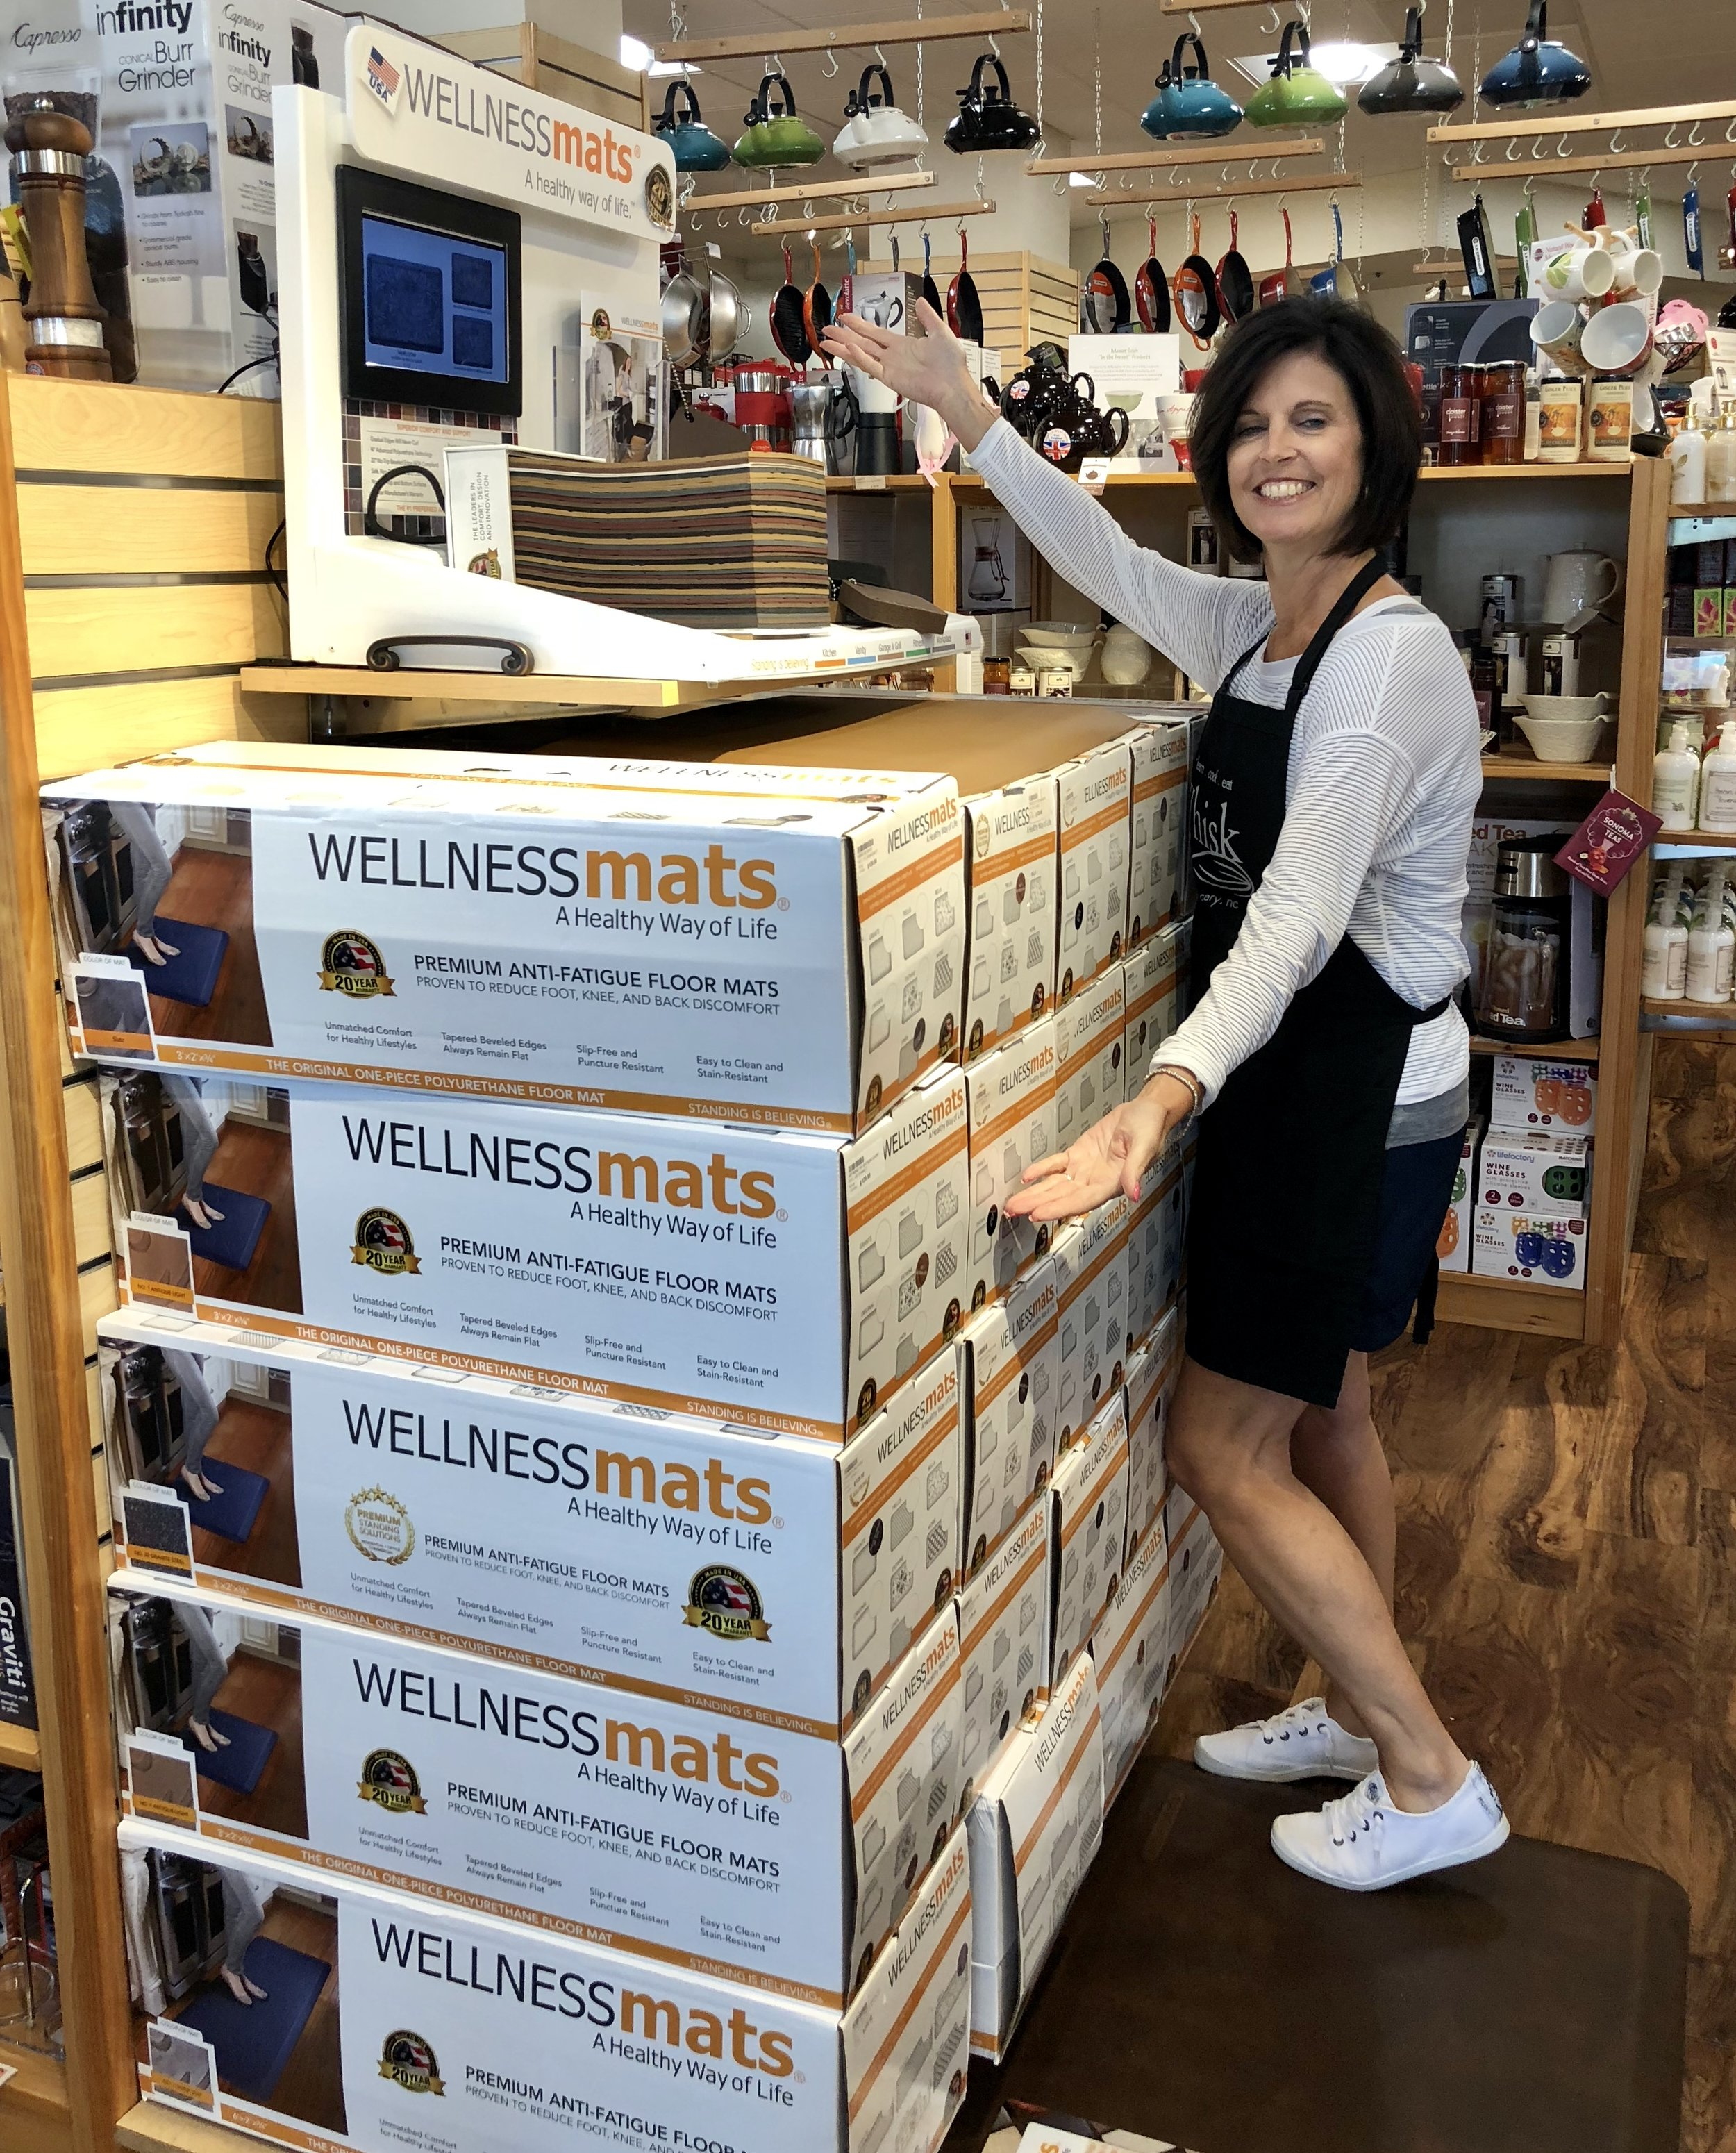 WellnessMats - Every home chef deserves to cook in comfort!Anti-fatigue mats are proven to reduce foot, knee and back pain.